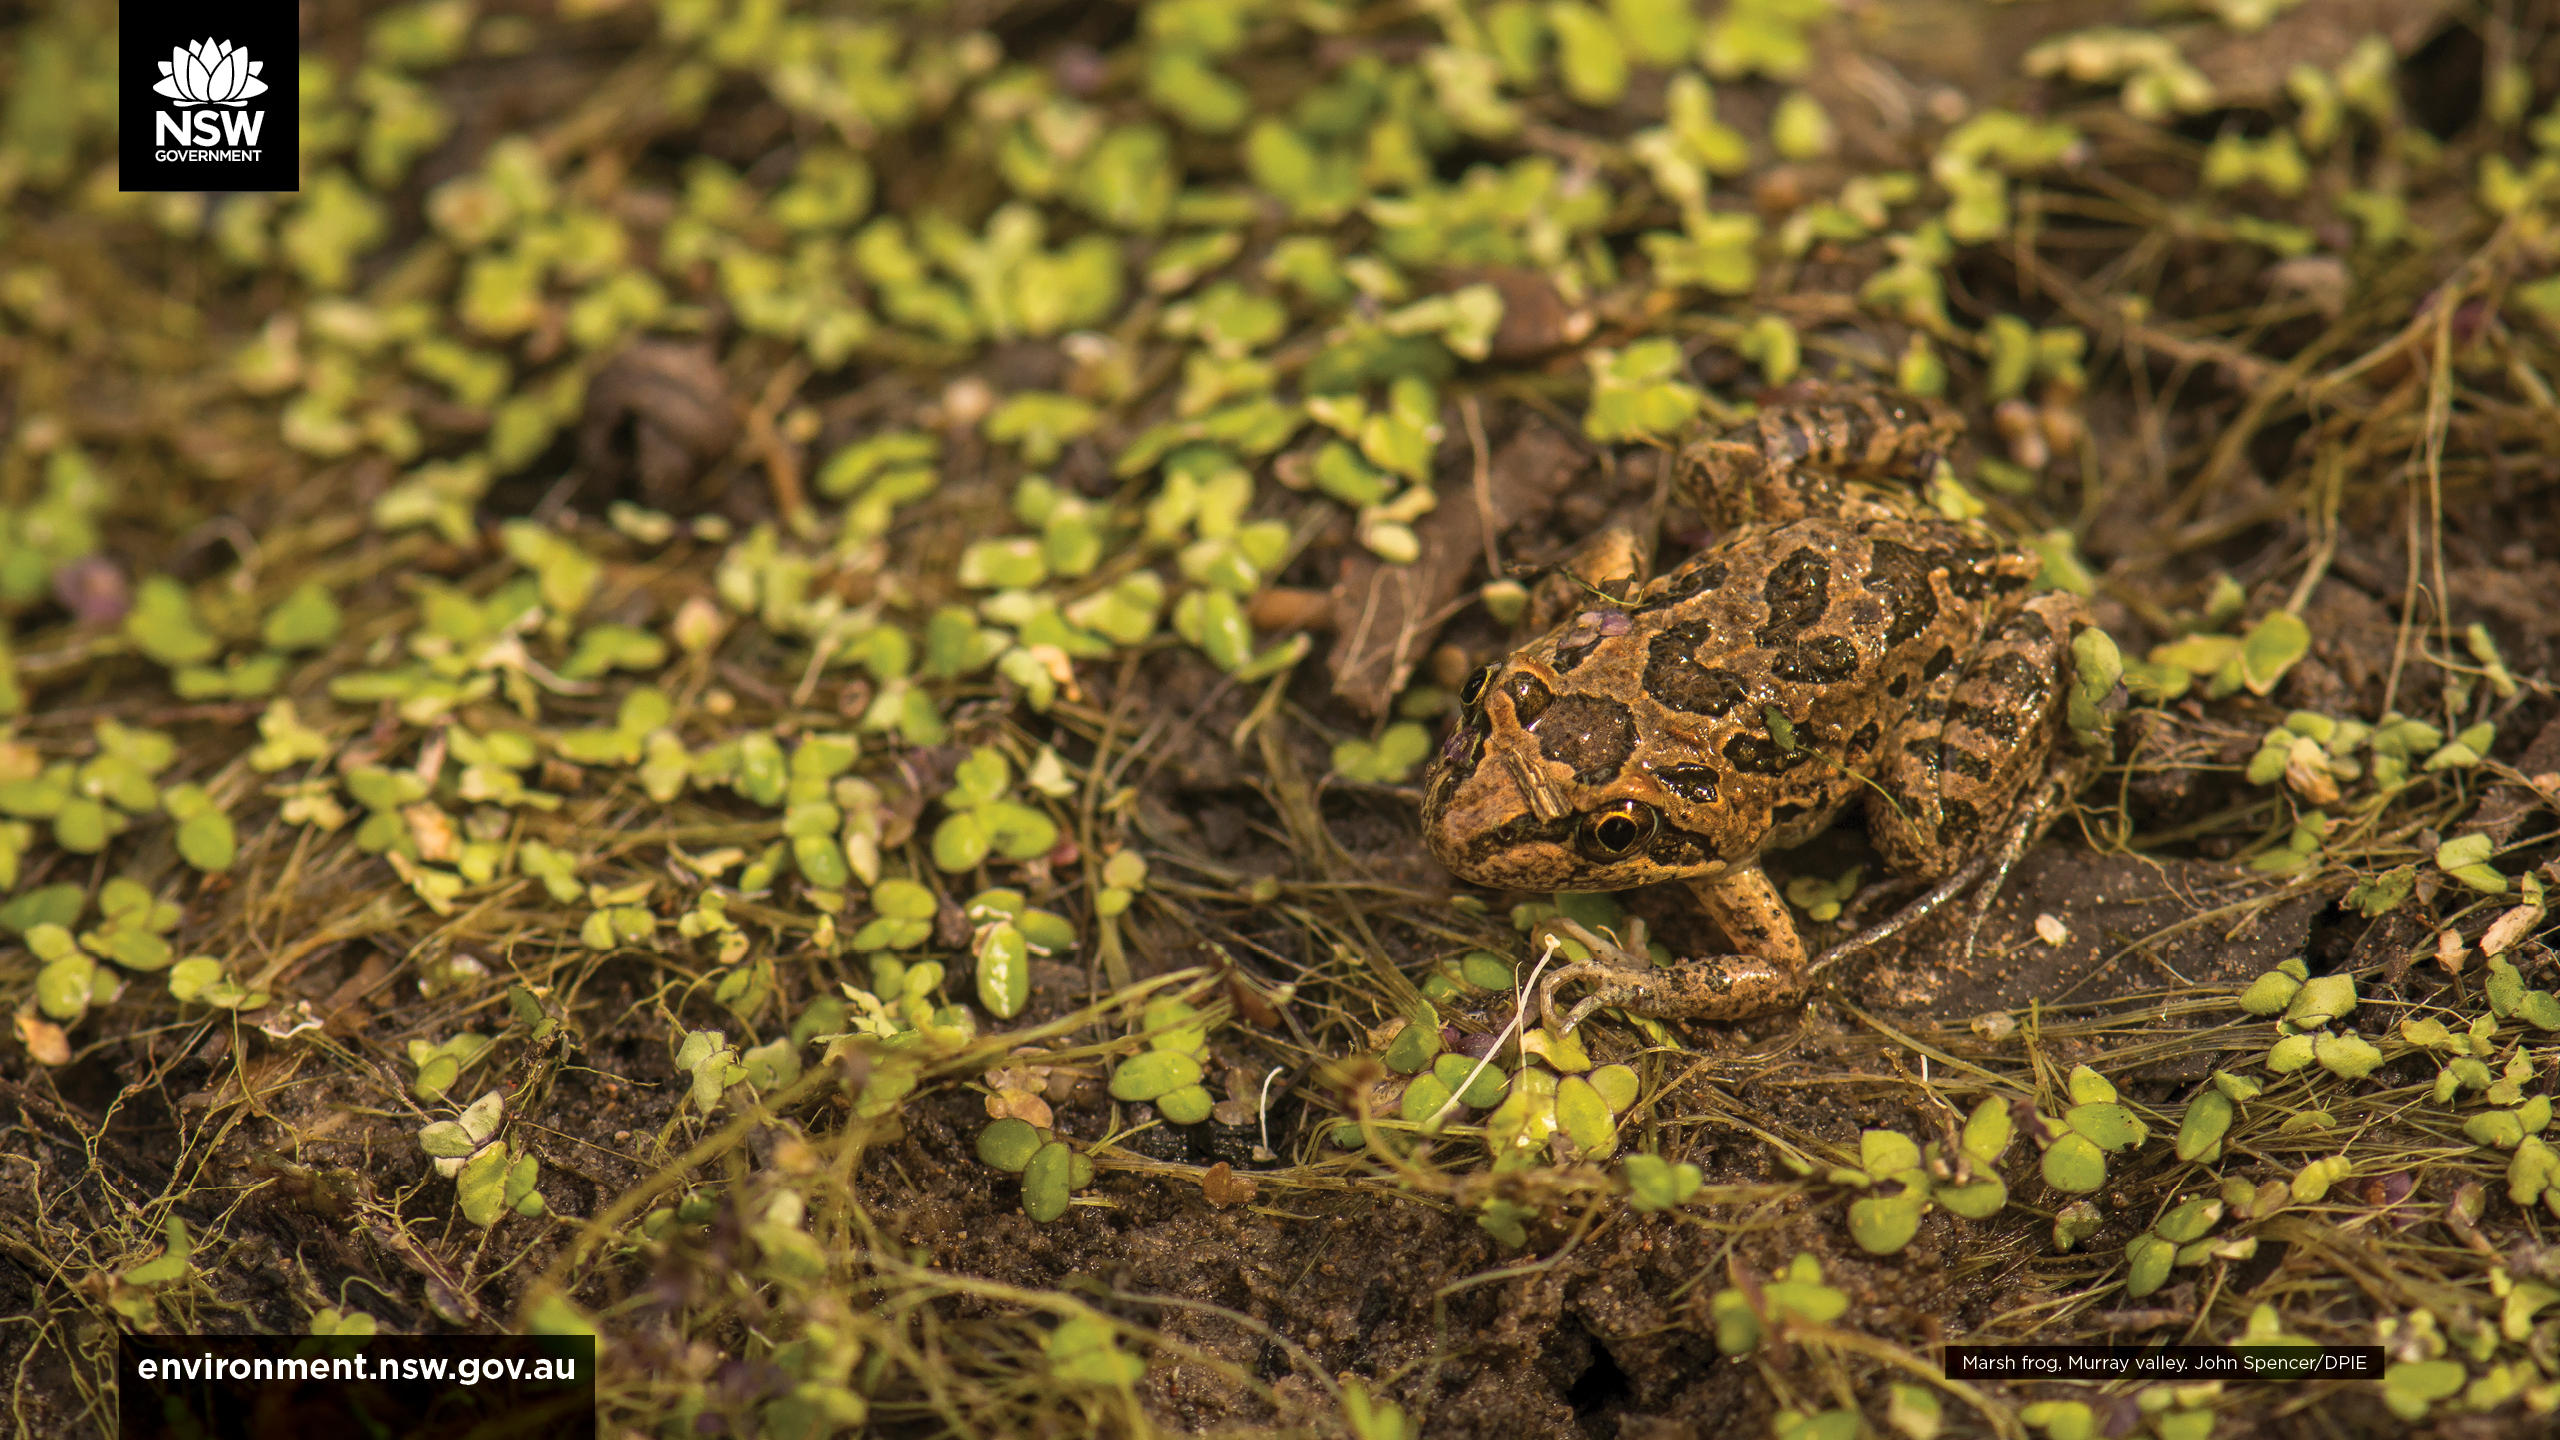 Marsh frog in a natural flood event